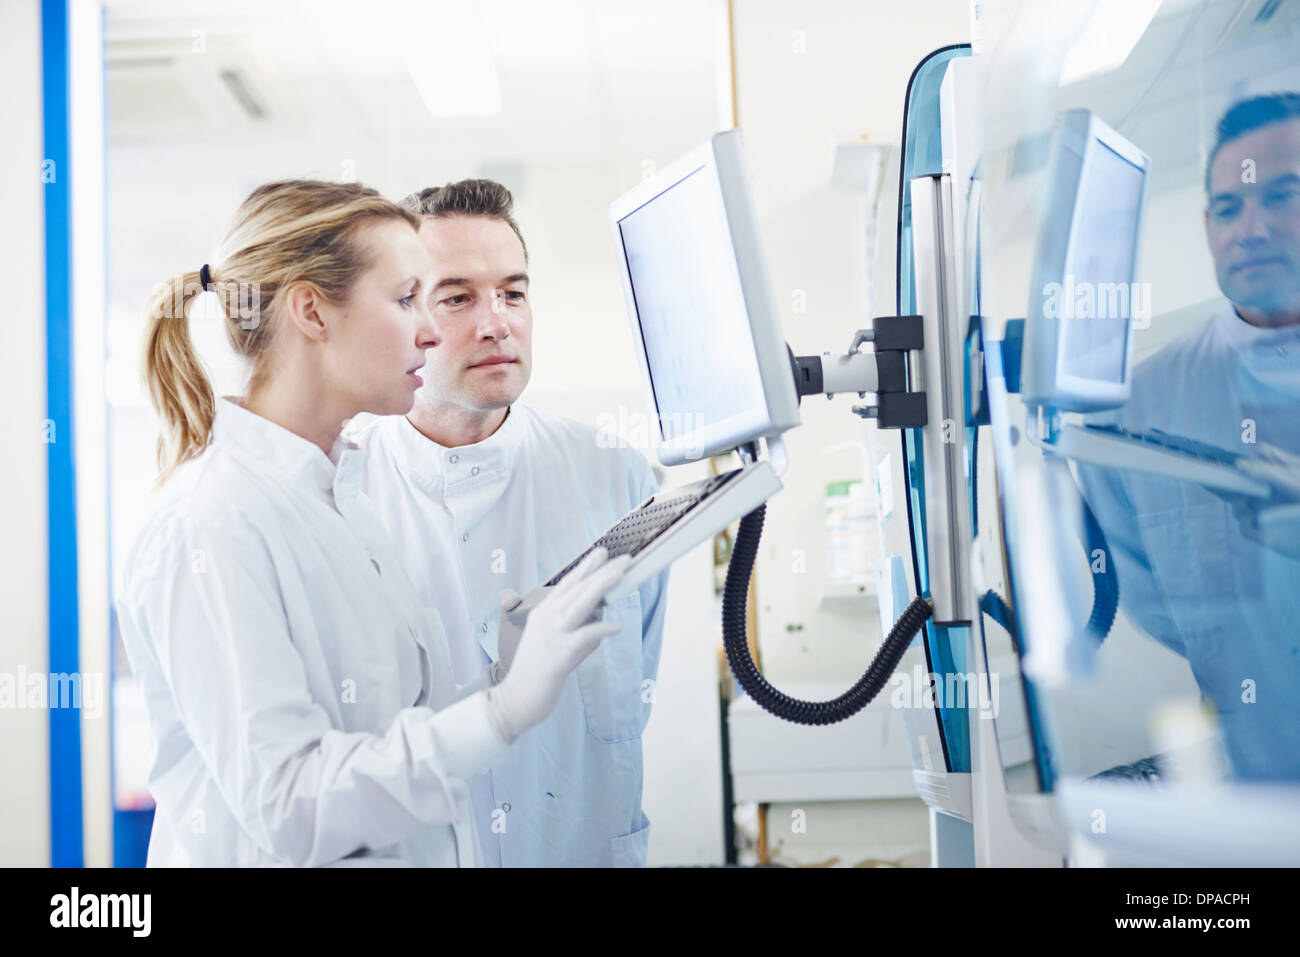 Researchers looking at computer in lab - Stock Image